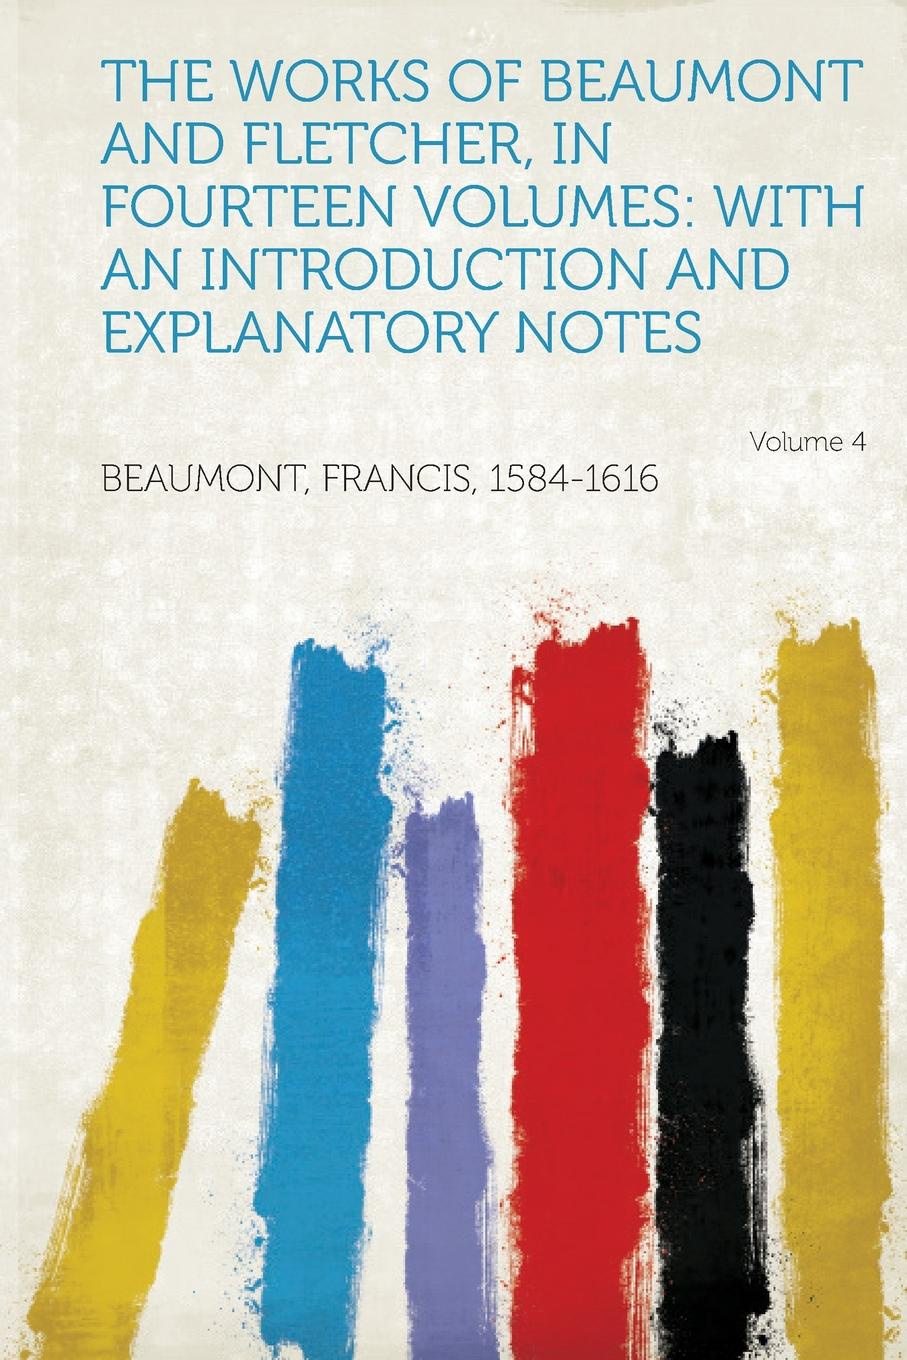 Francis Beaumont The Works of Beaumont and Fletcher, in Fourteen Volumes. With an Introduction and Explanatory Notes Volume 4 francis beaumont the works of beaumont and fletcher in fourteen volumes with an introduction and explanatory notes volume 2